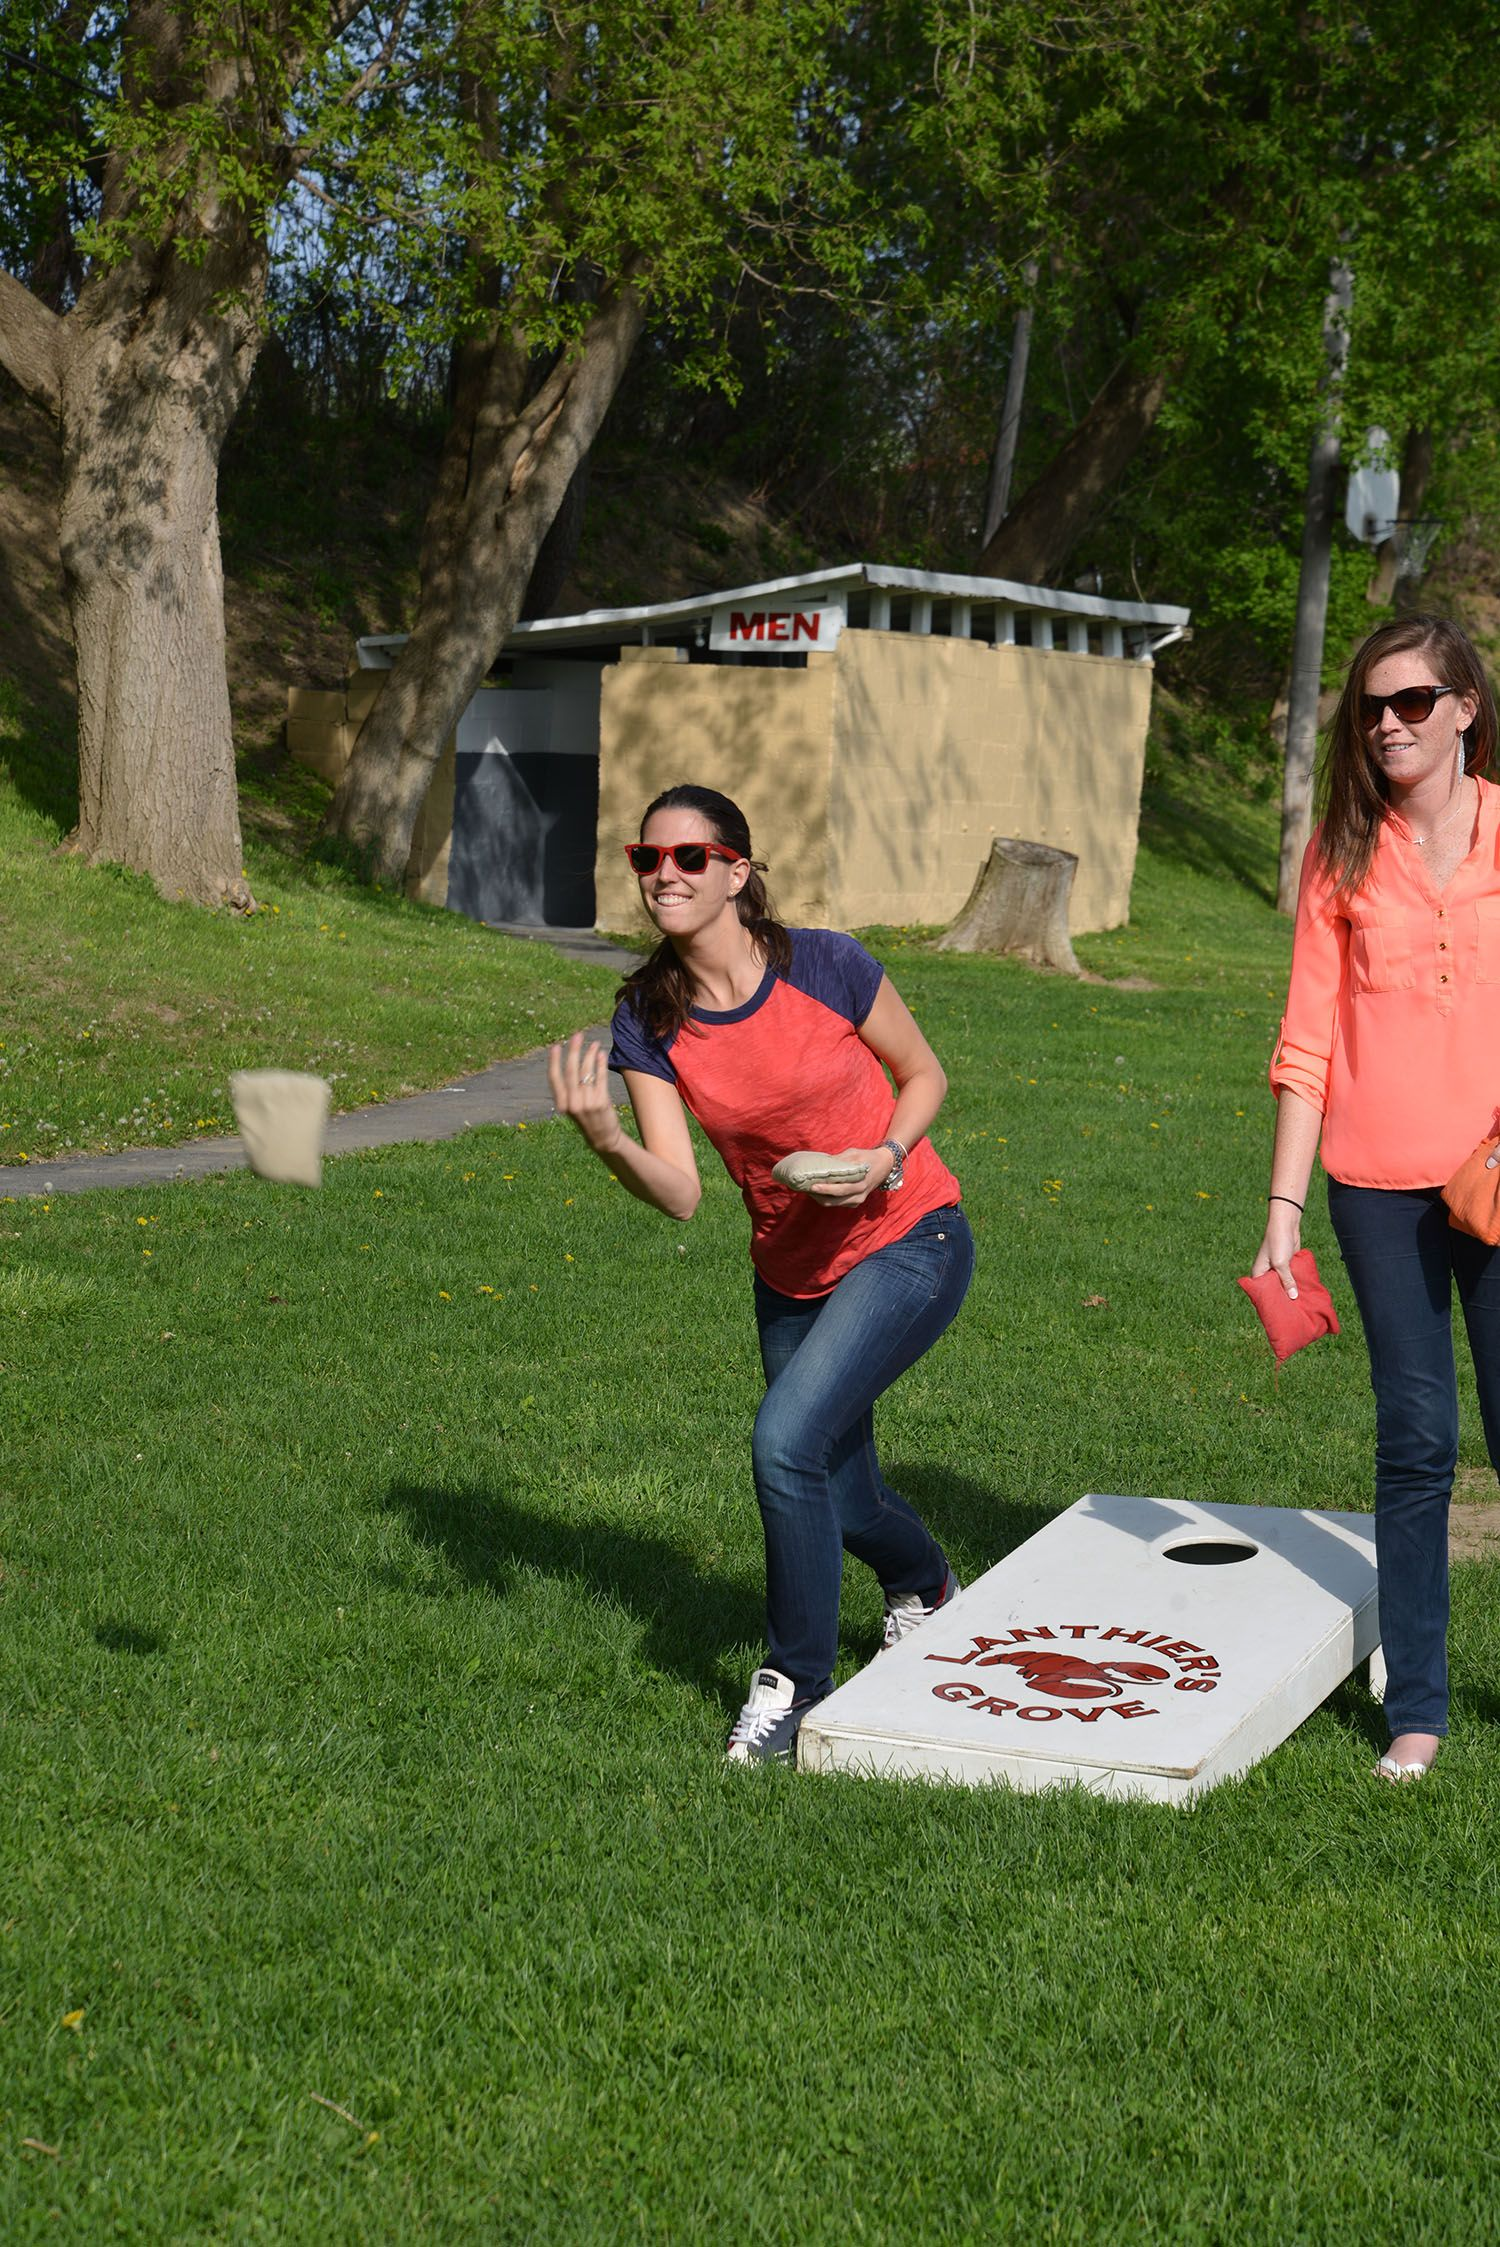 Fun and games at the annual pany picnic